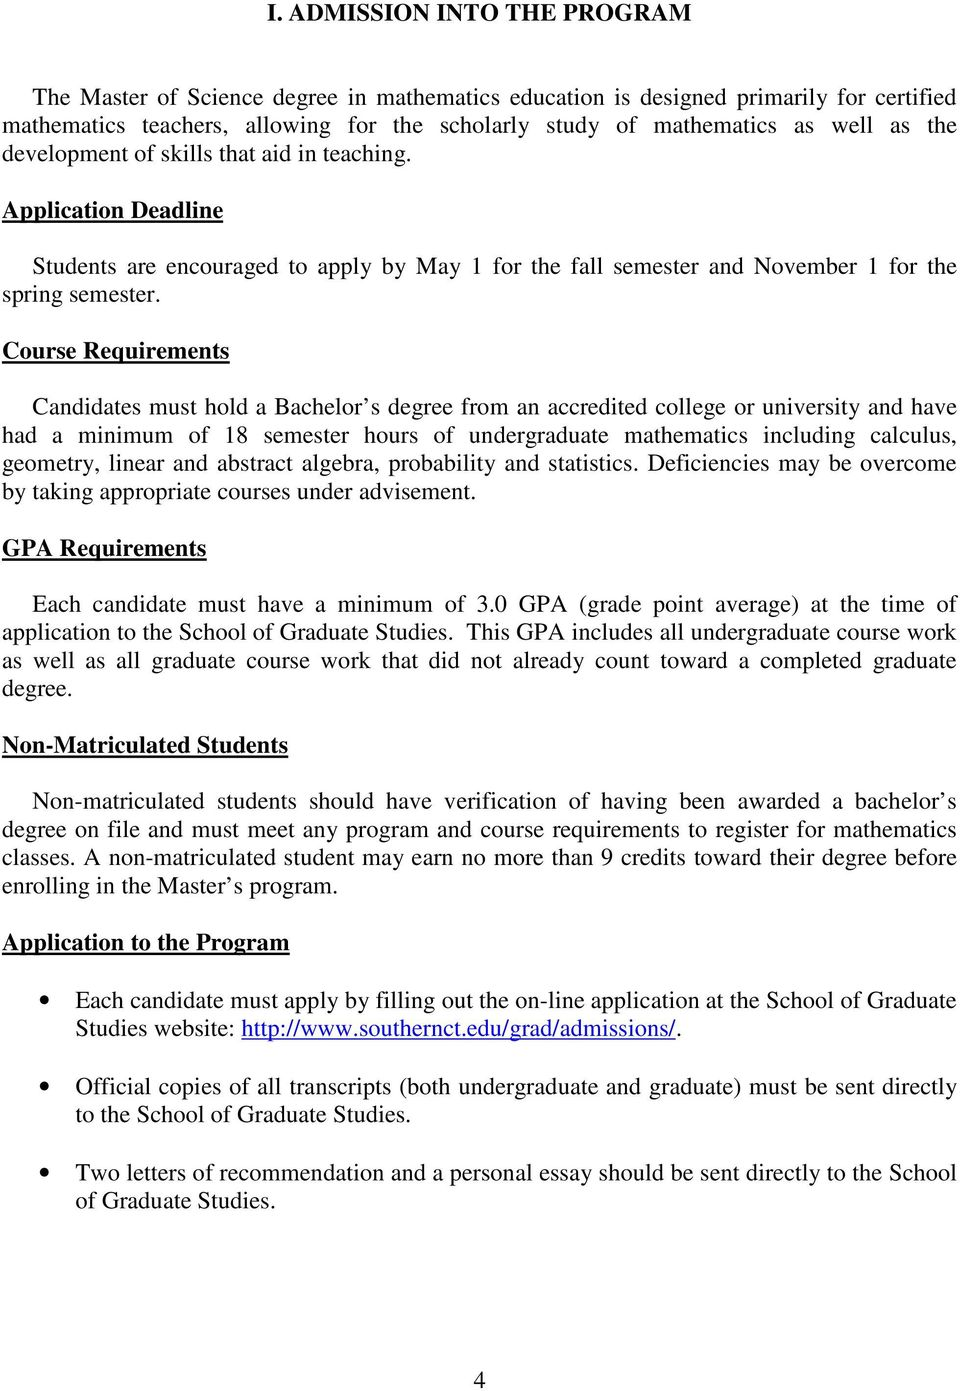 Course Requirements Candidates must hold a Bachelor s degree from an accredited college or university and have had a minimum of 18 semester hours of undergraduate mathematics including calculus,